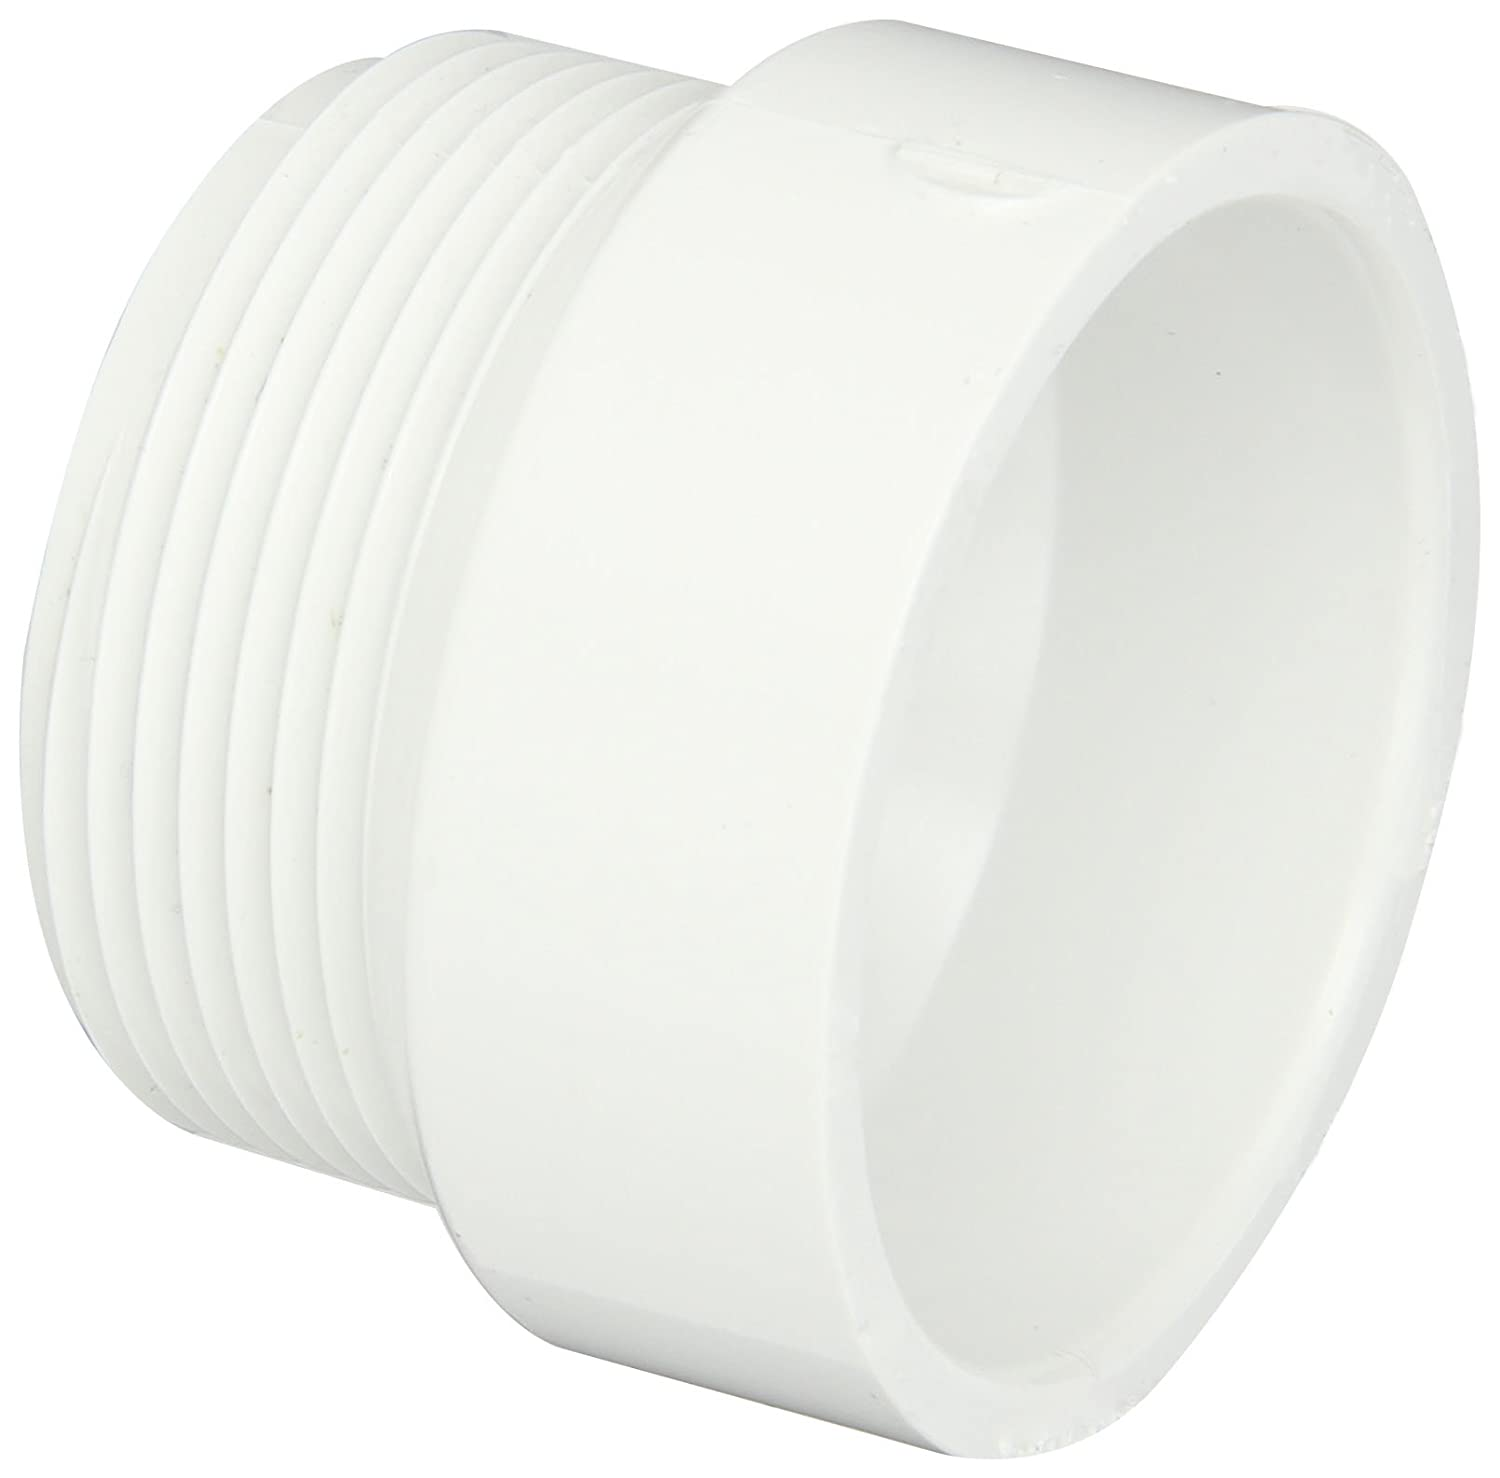 Spears P104R Series PVC DWV Pipe Fitting, Trap Adapter with Plastic Nut & Washer, 1-1/2